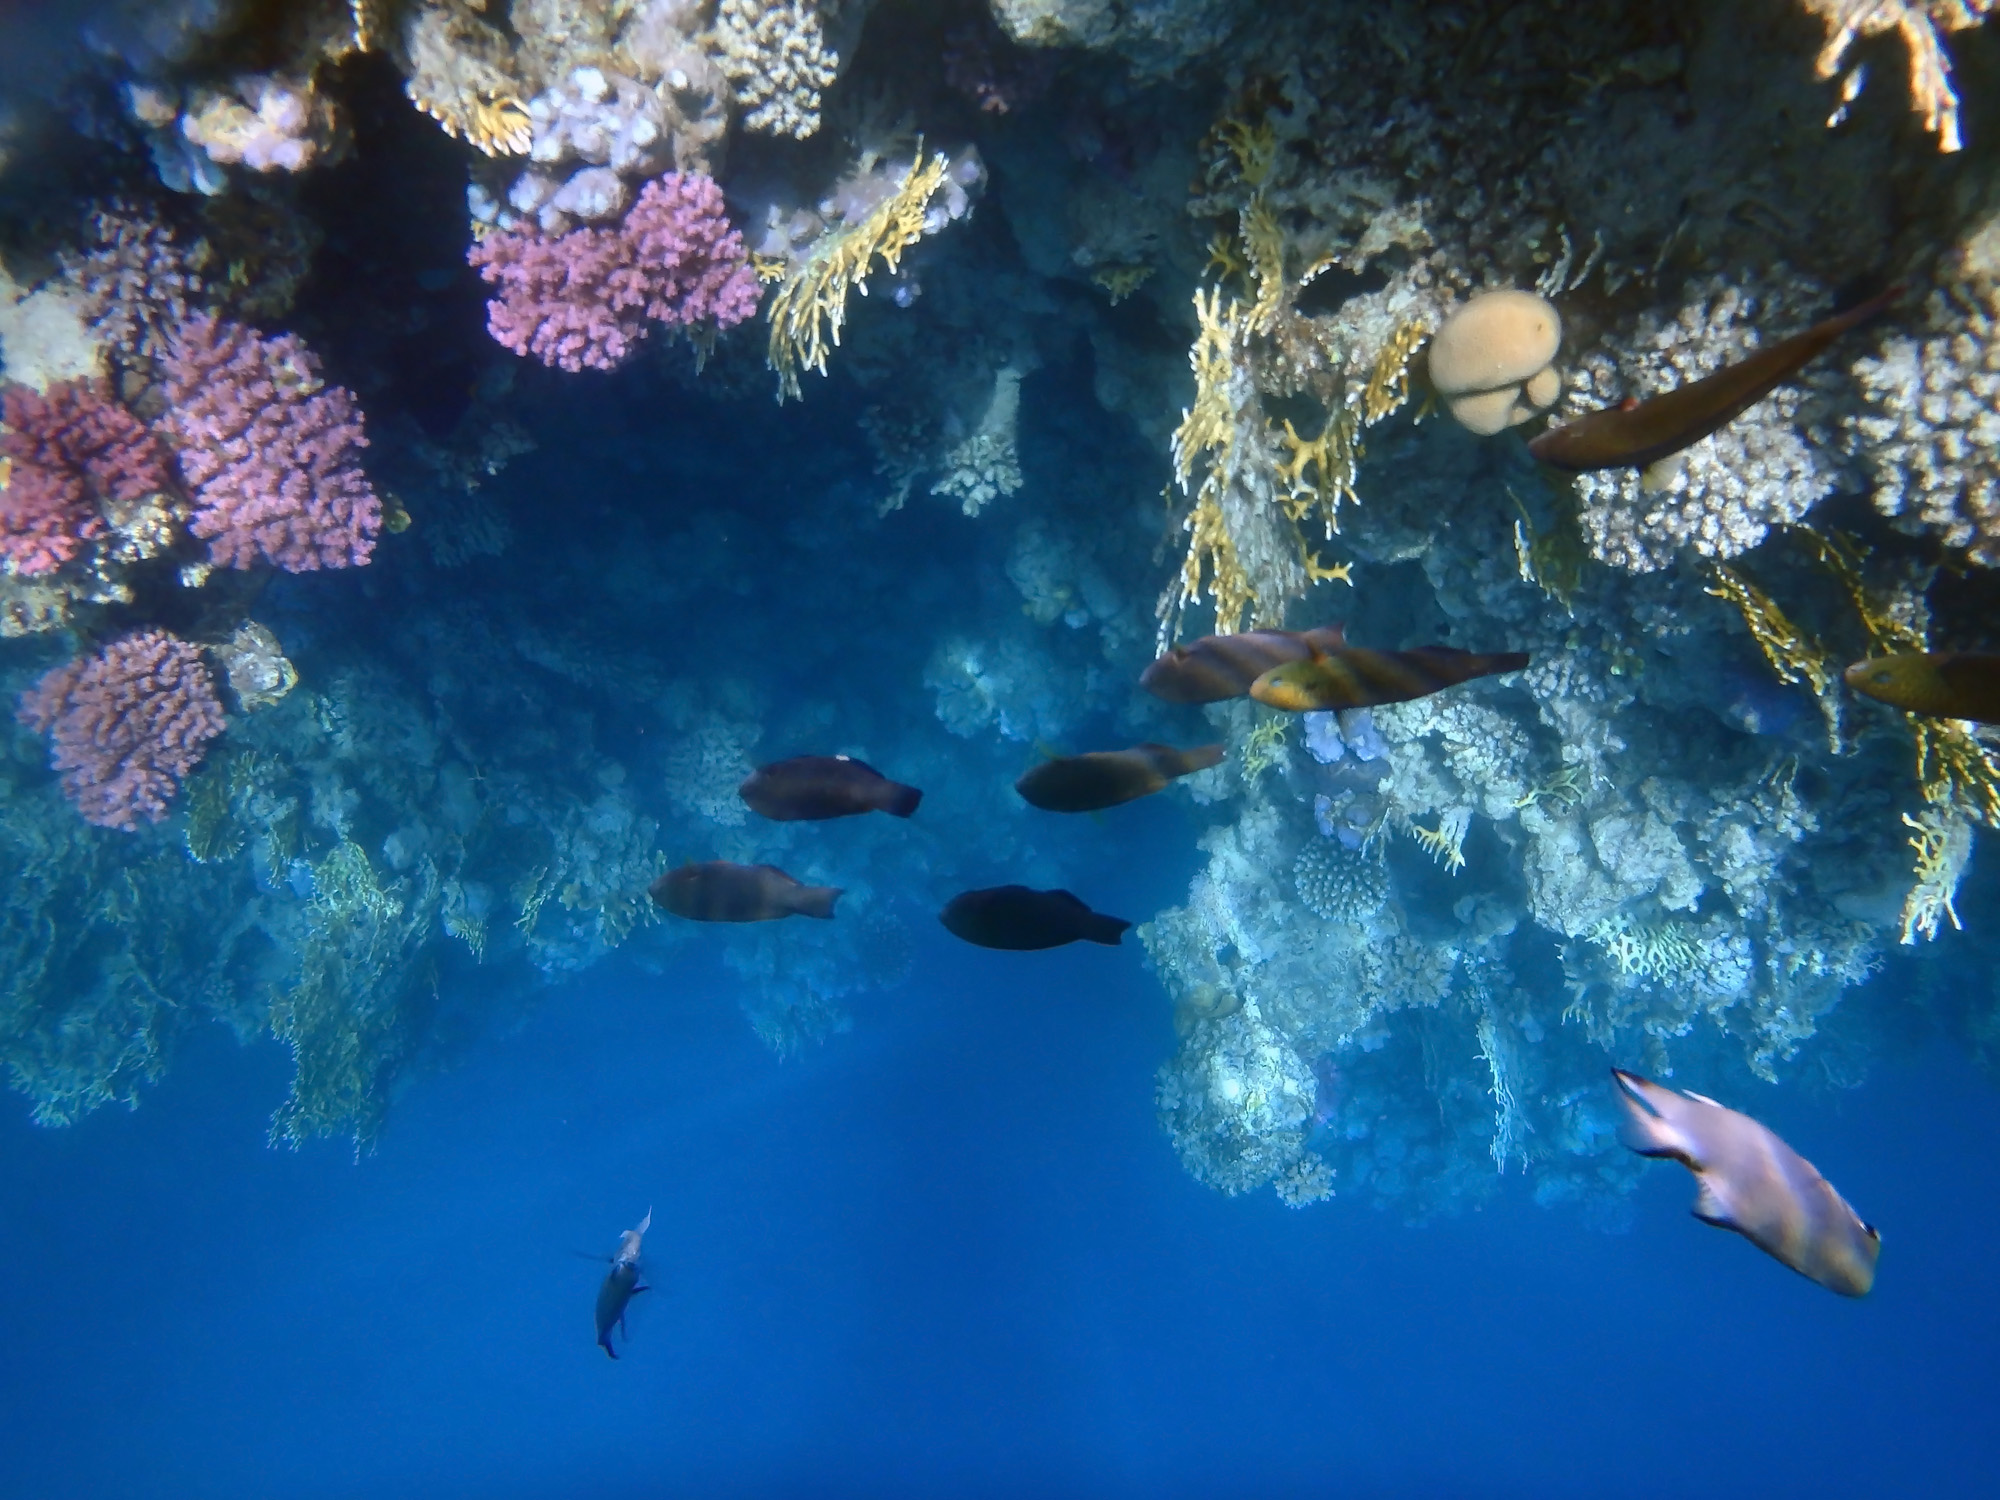 Red Sea is full of beauty EUROPE THE MEDITERRANEAN SEA THE RED SEA